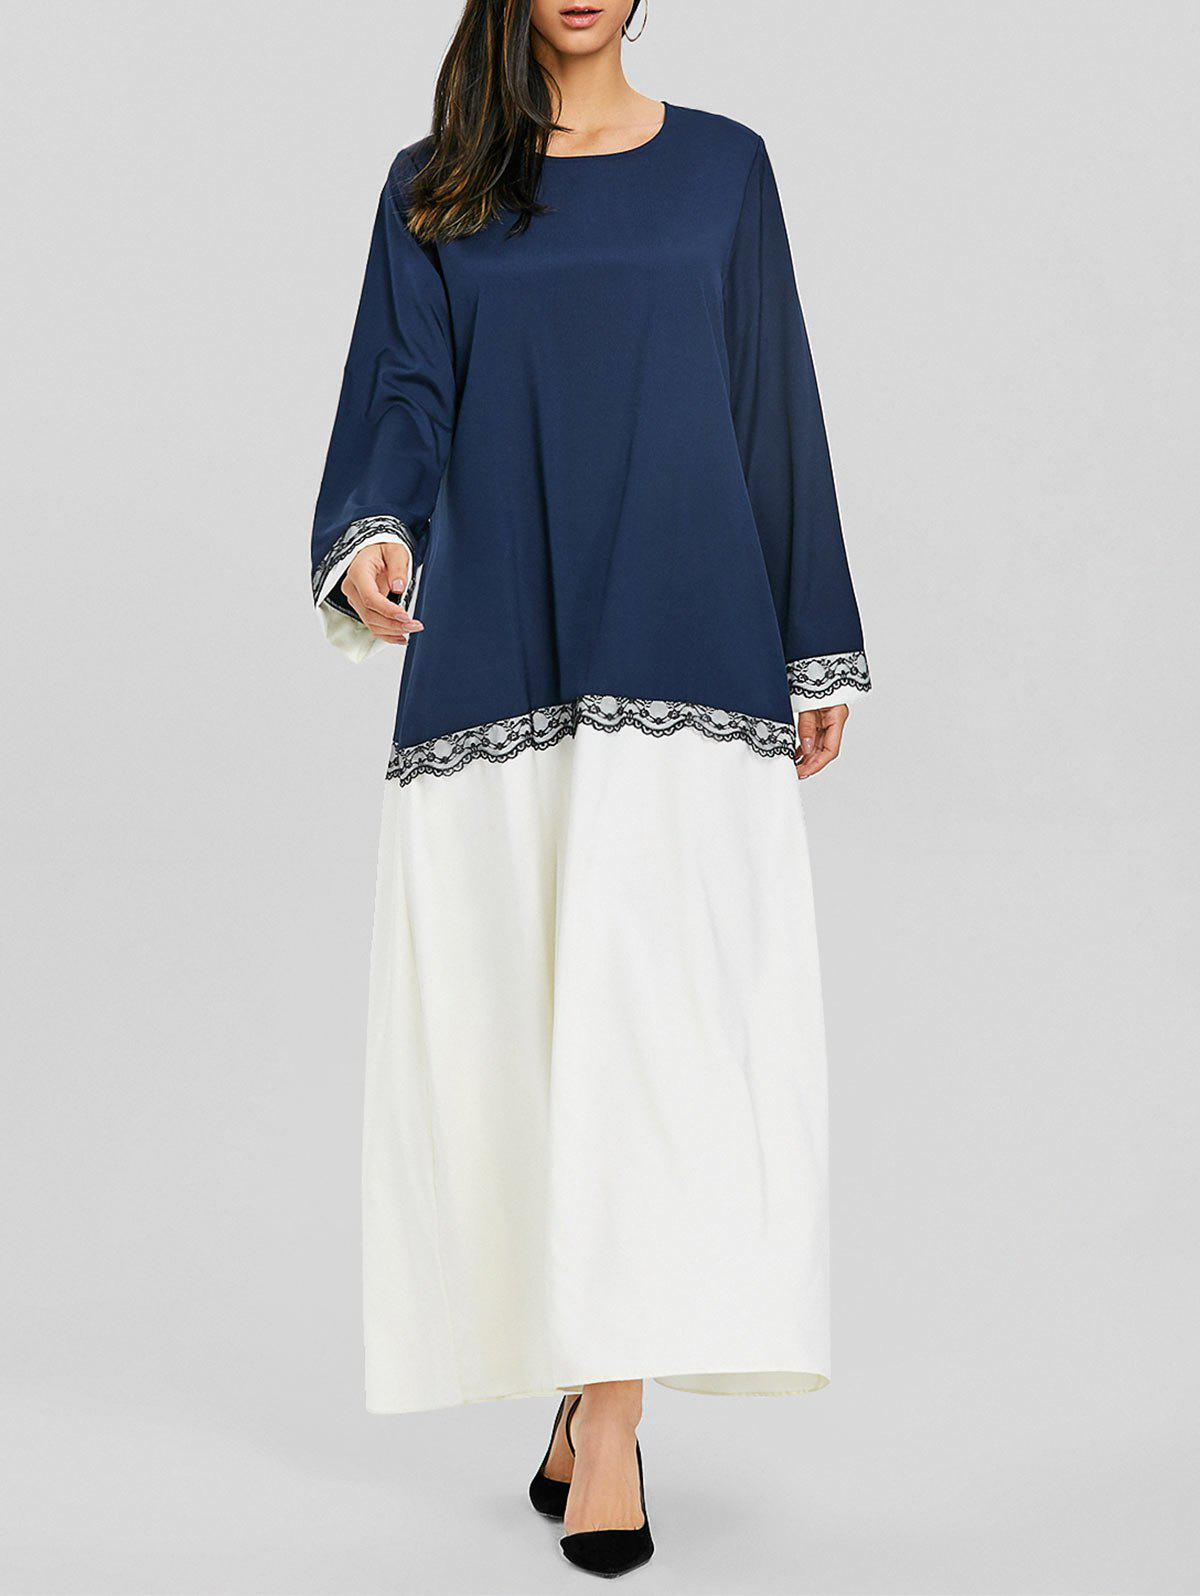 Two Tone Middle Eastern Longline Dress middle eastern patterns to colour